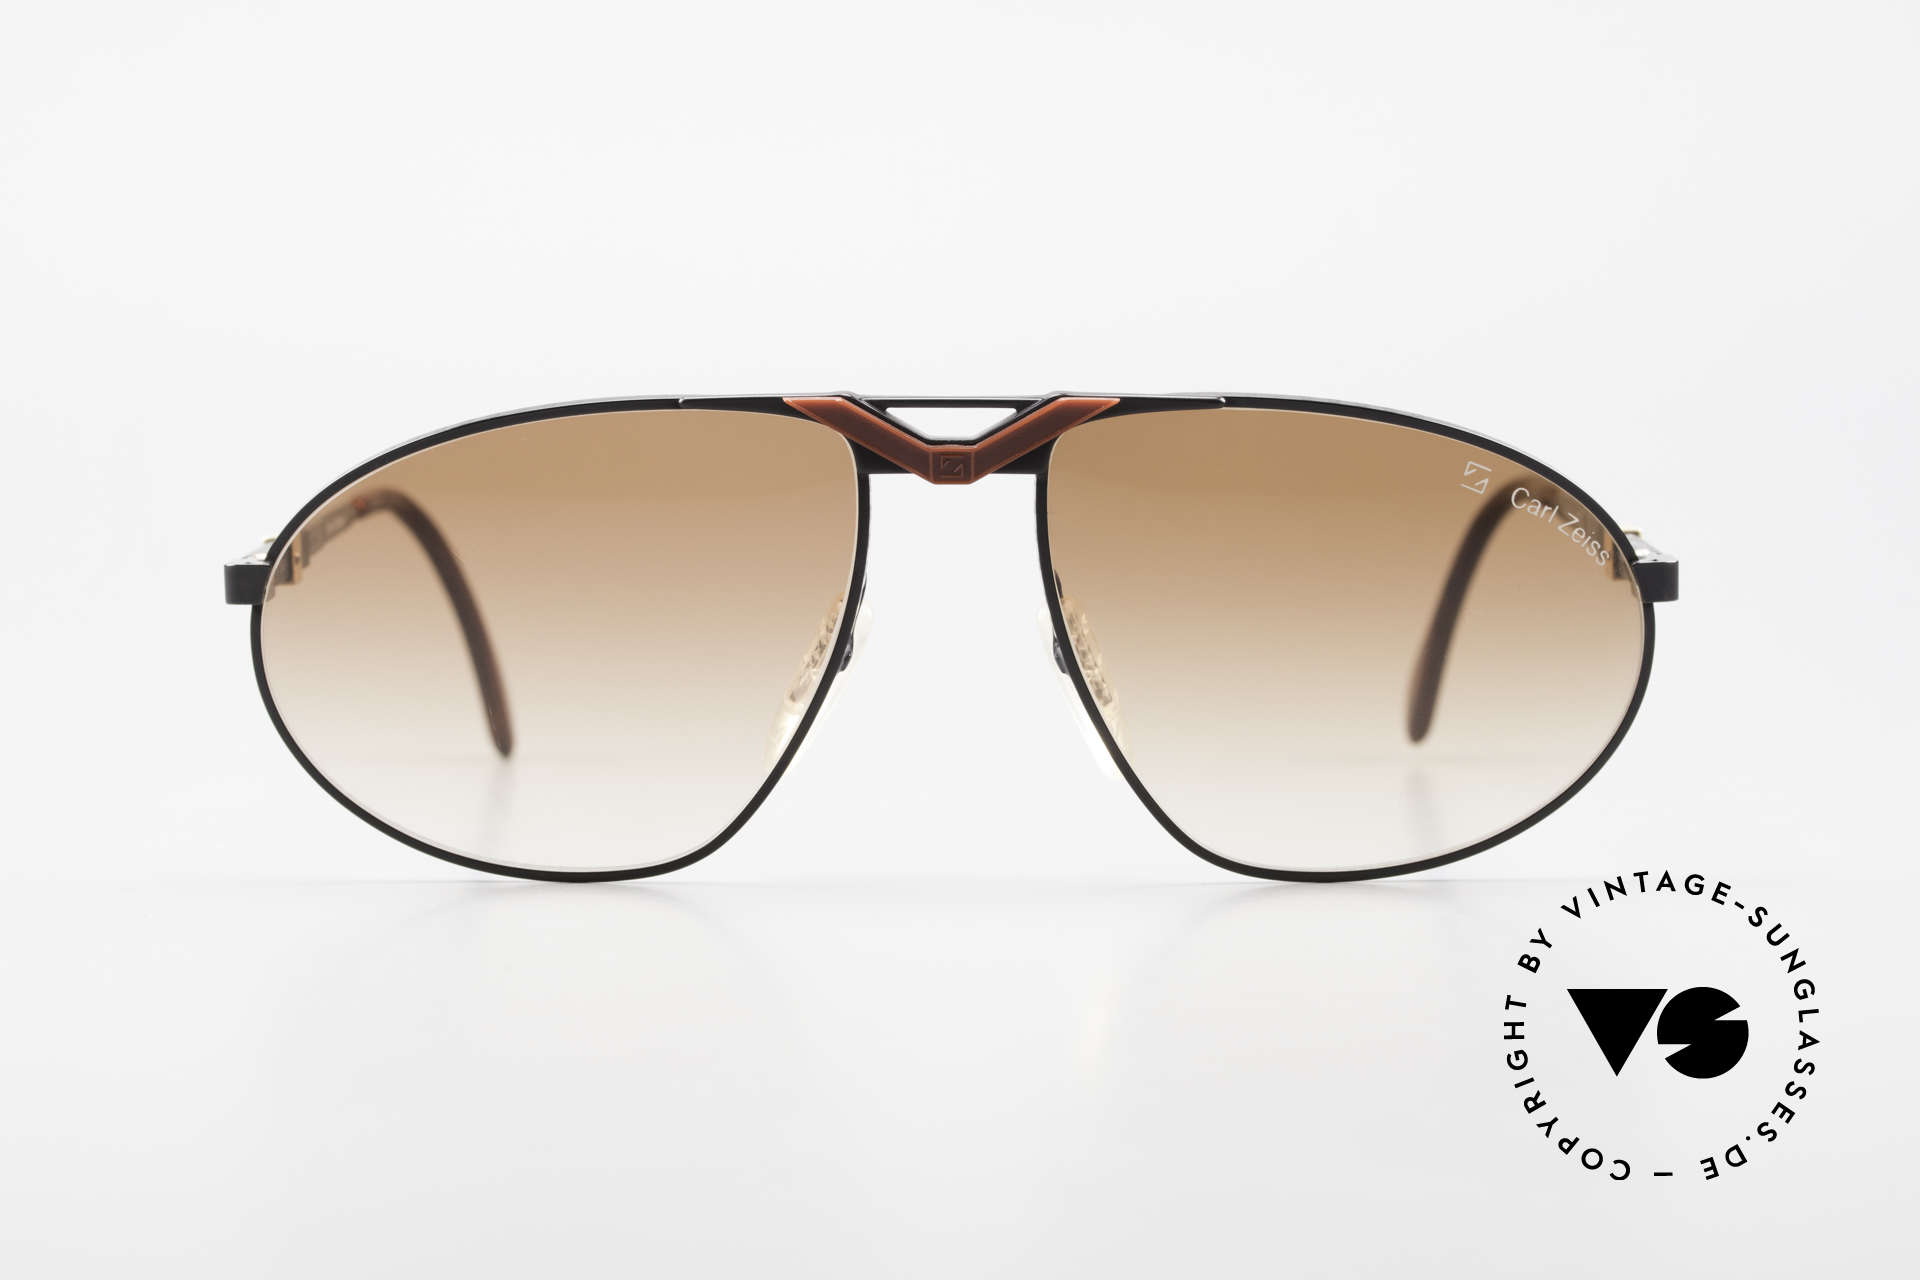 Zeiss 9929 Old 80's Competition Series, solid metal frame with costly engravings and details, Made for Men